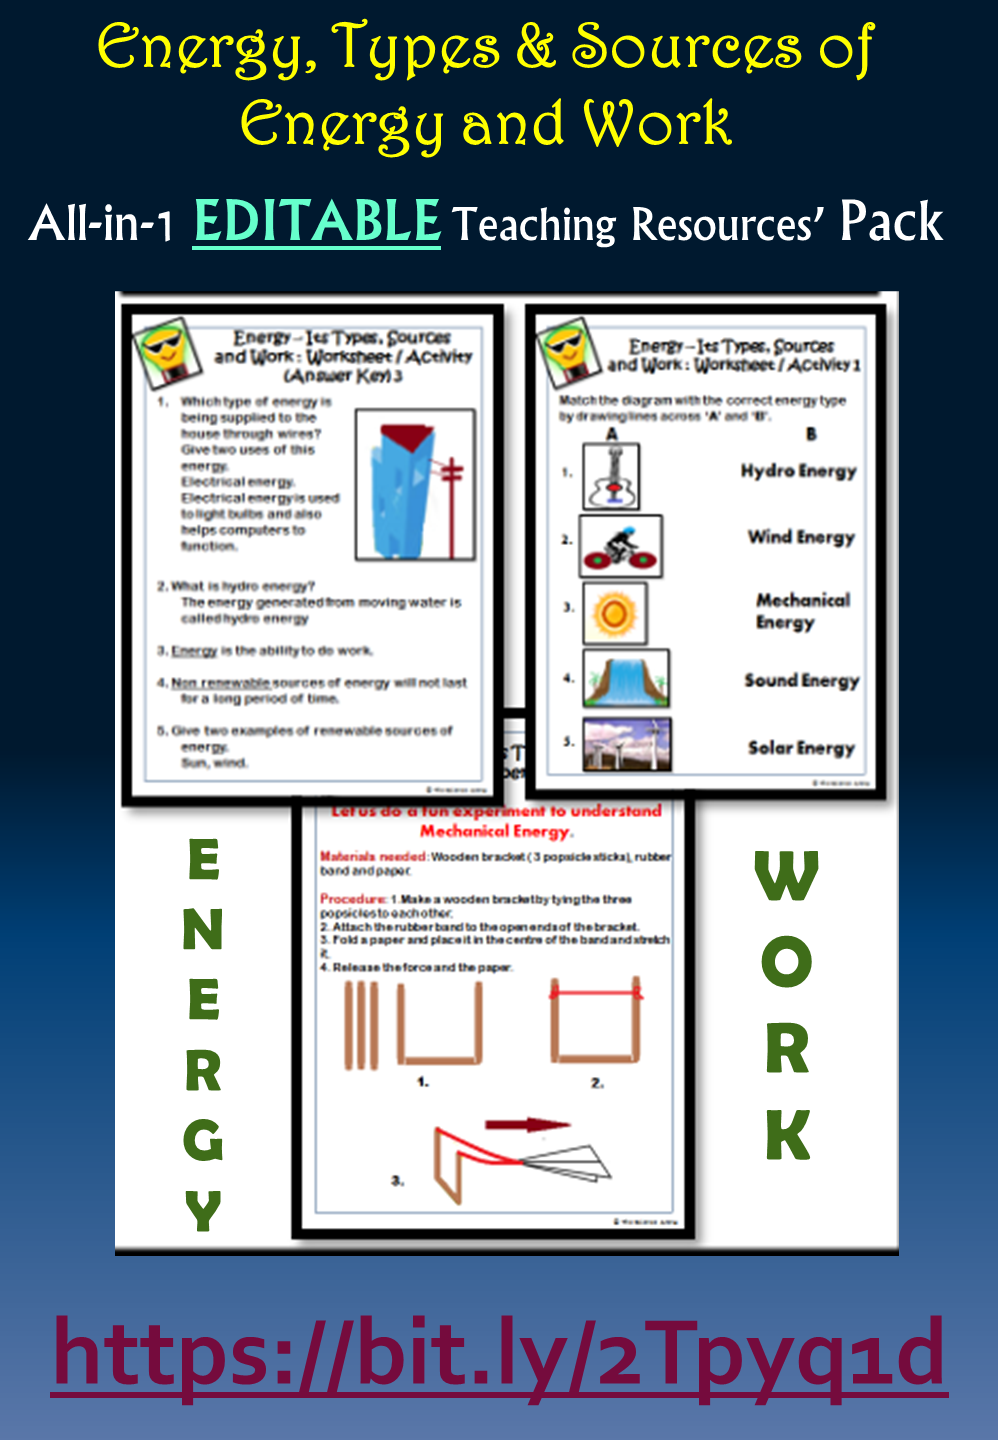 Energy Types Sources Of Energy And Work All In 1 Editable Pack Grades 3 6 Middle School Resources Science Resources Teaching Resources [ 1440 x 998 Pixel ]